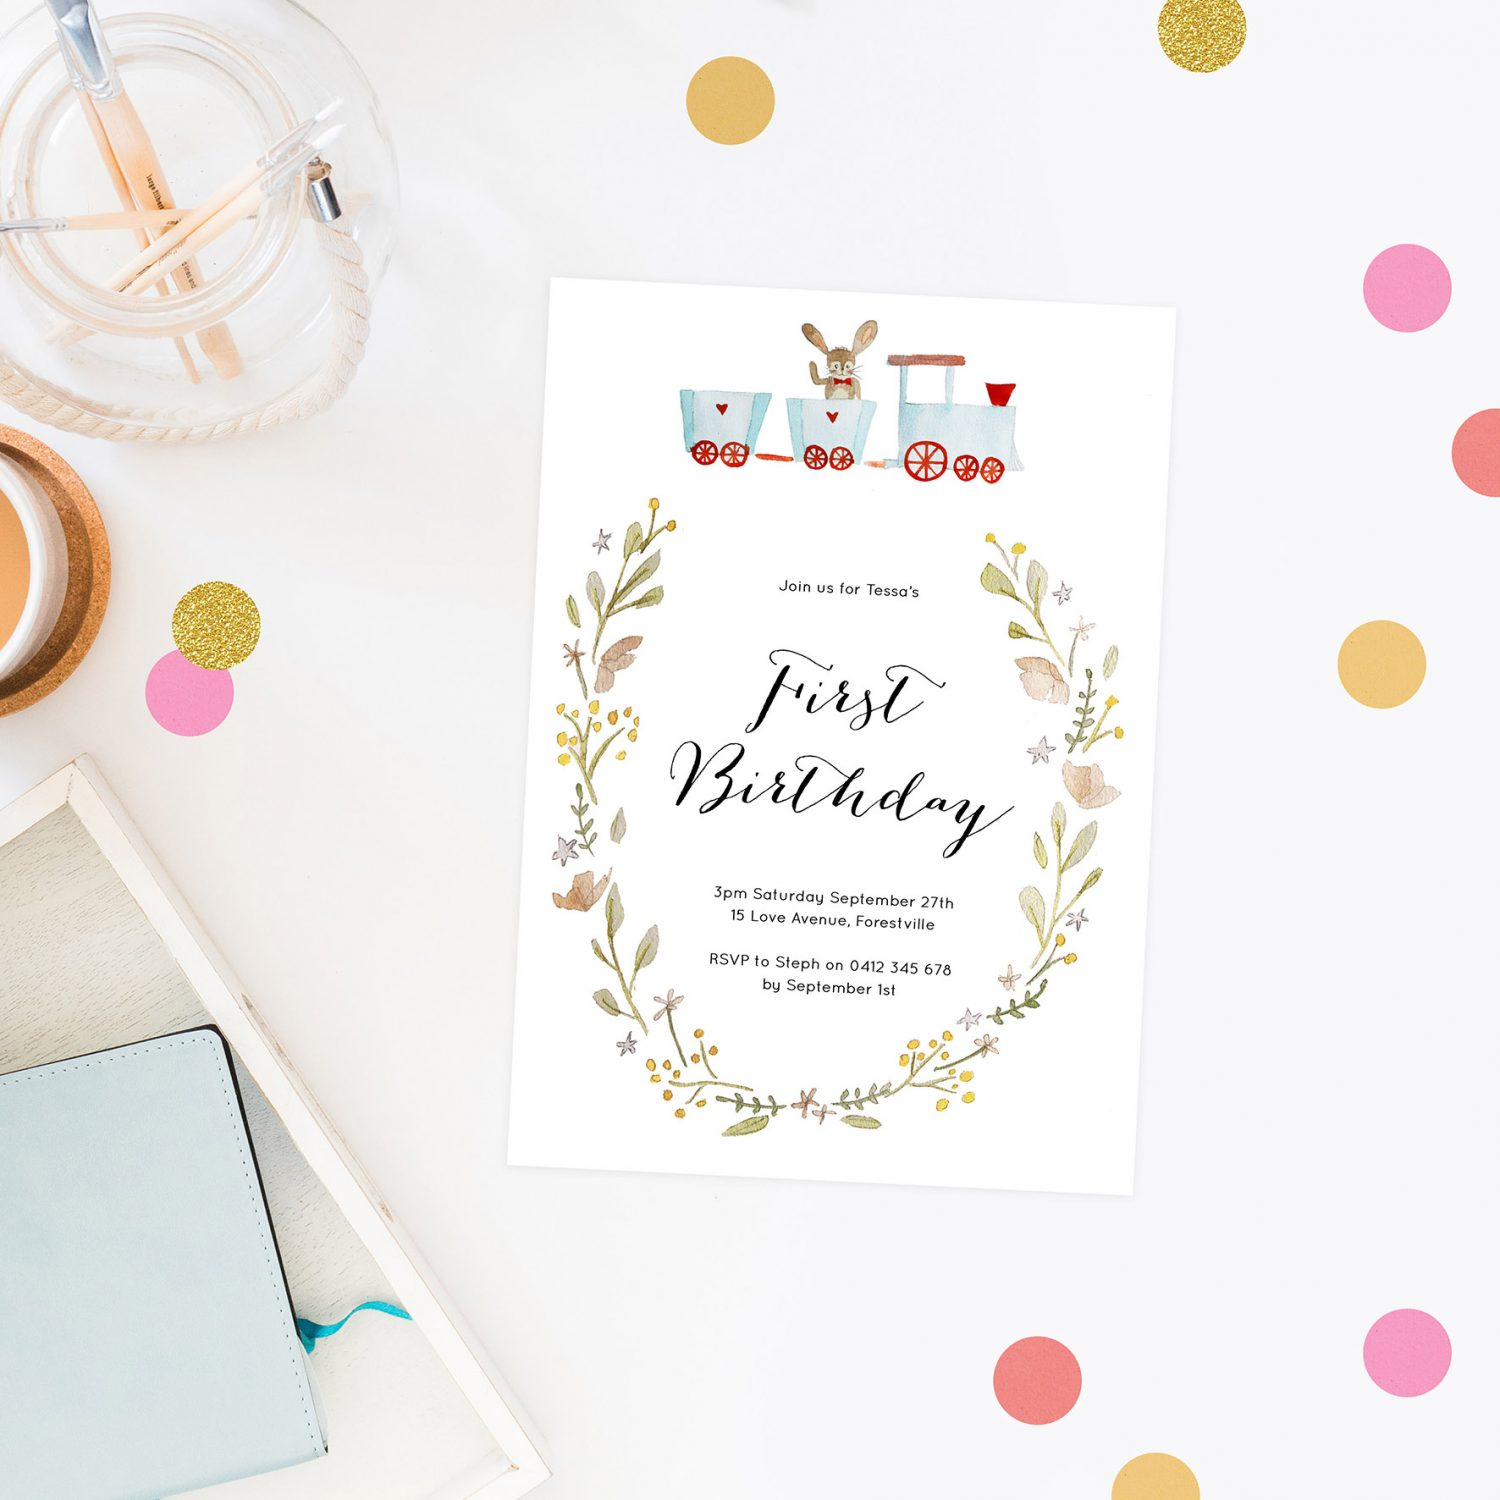 Watercolour Kids Birthday Invitations Bunny on a Train by Sail and Swan